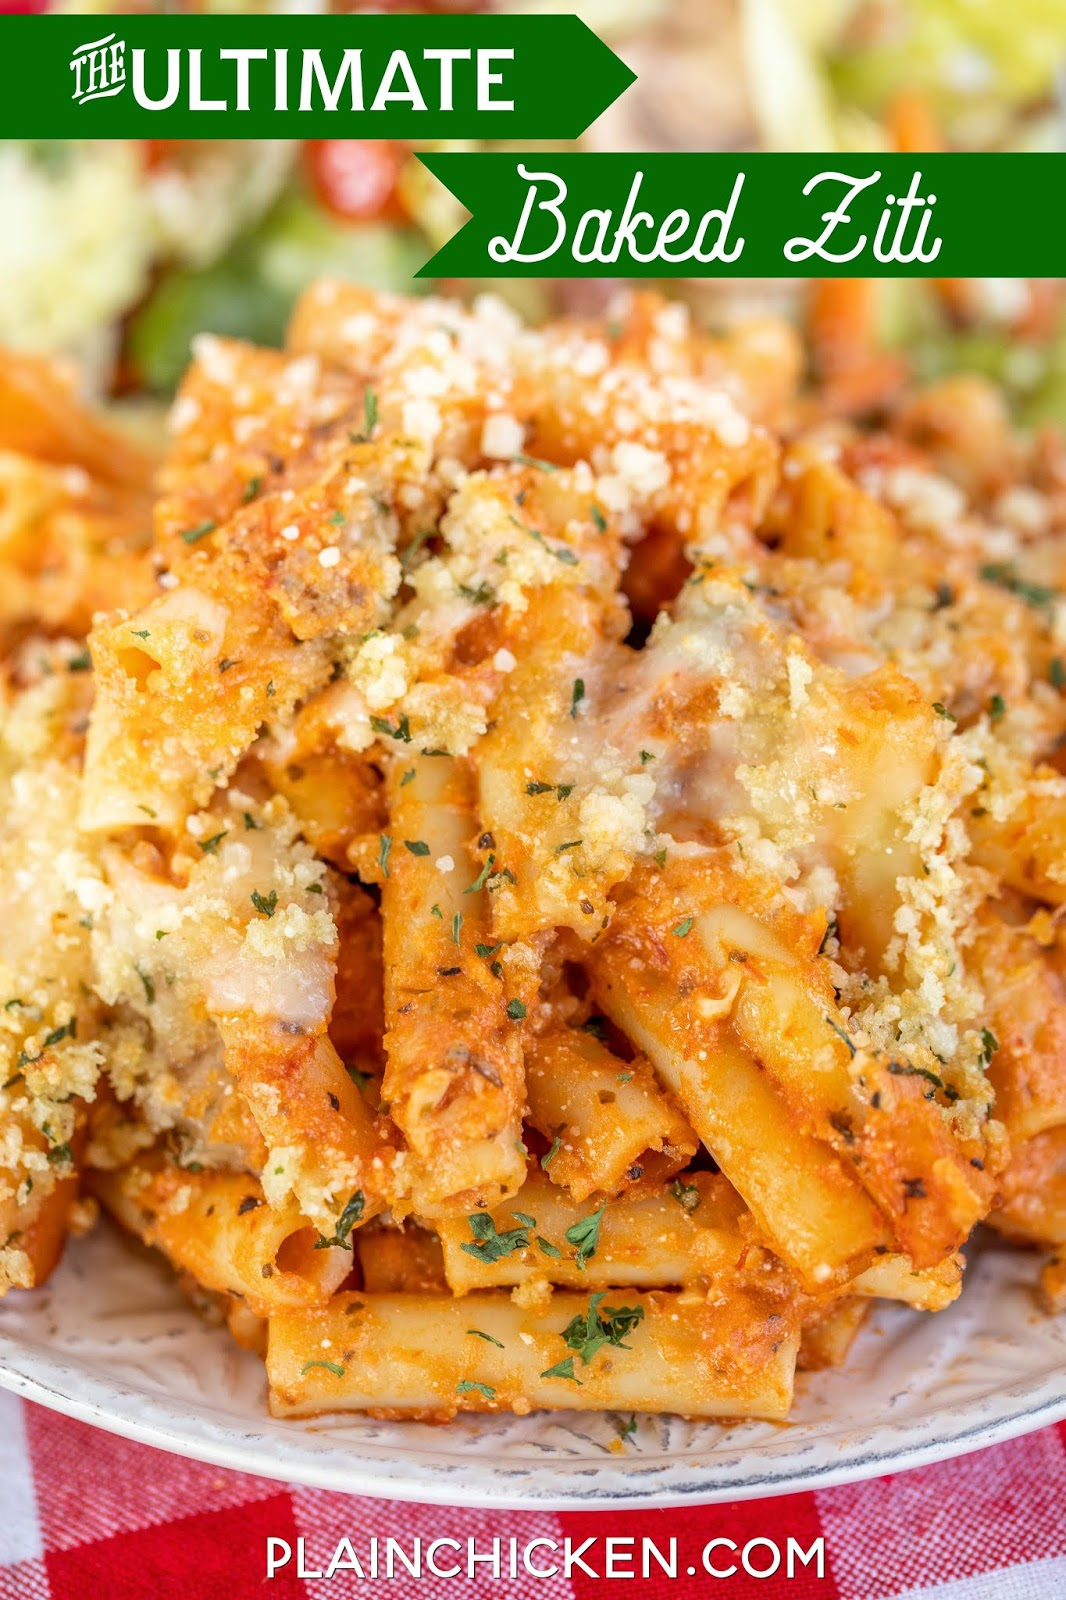 baked ziti and salad on a plate